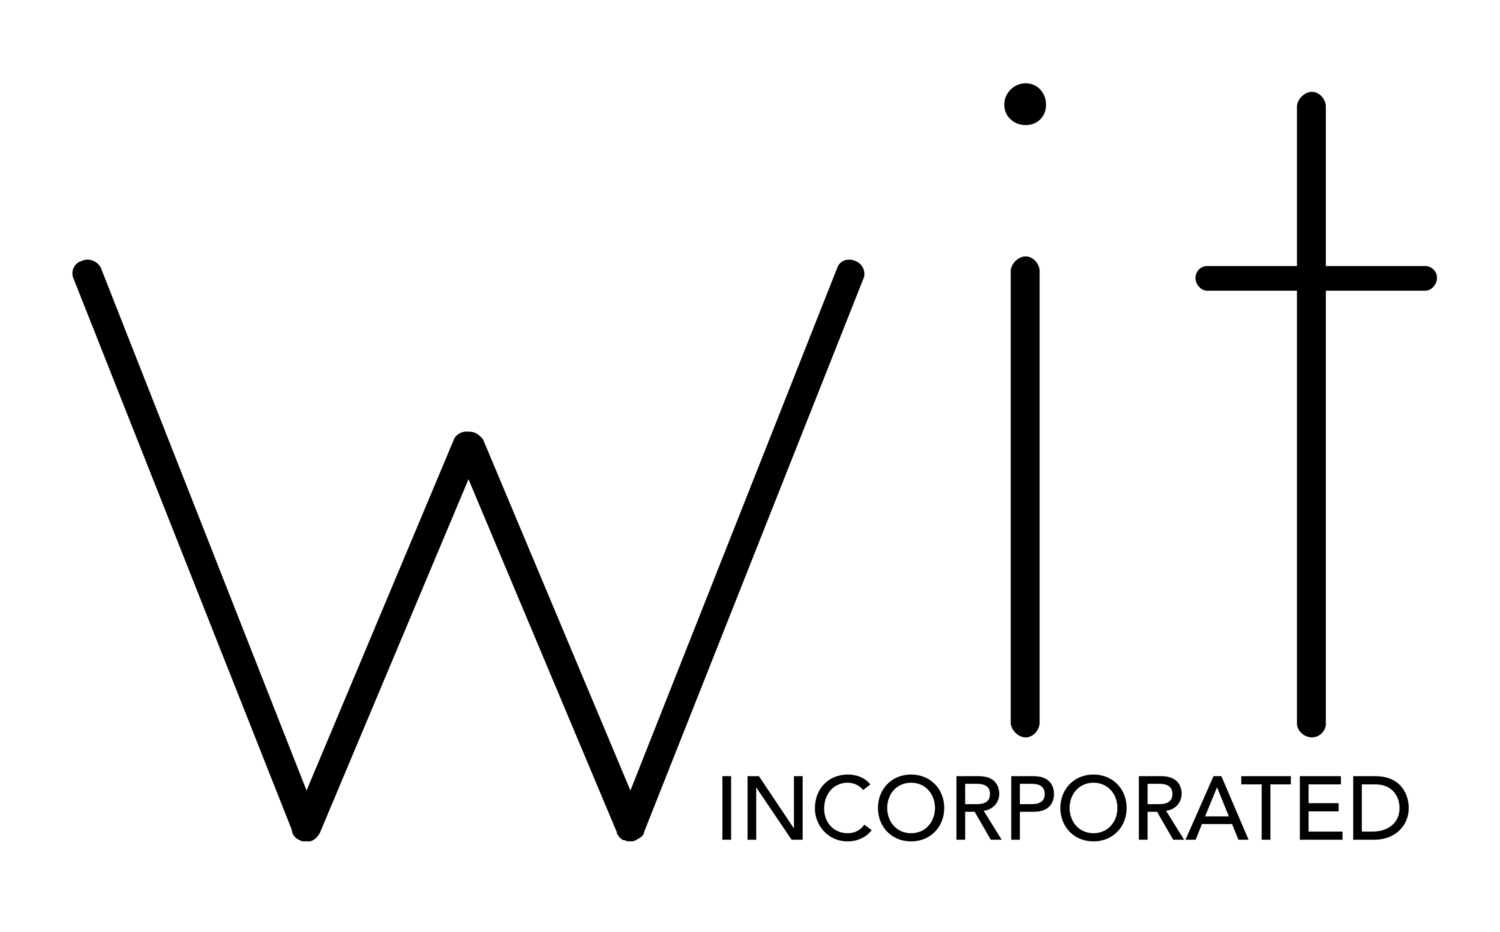 wit incorporated